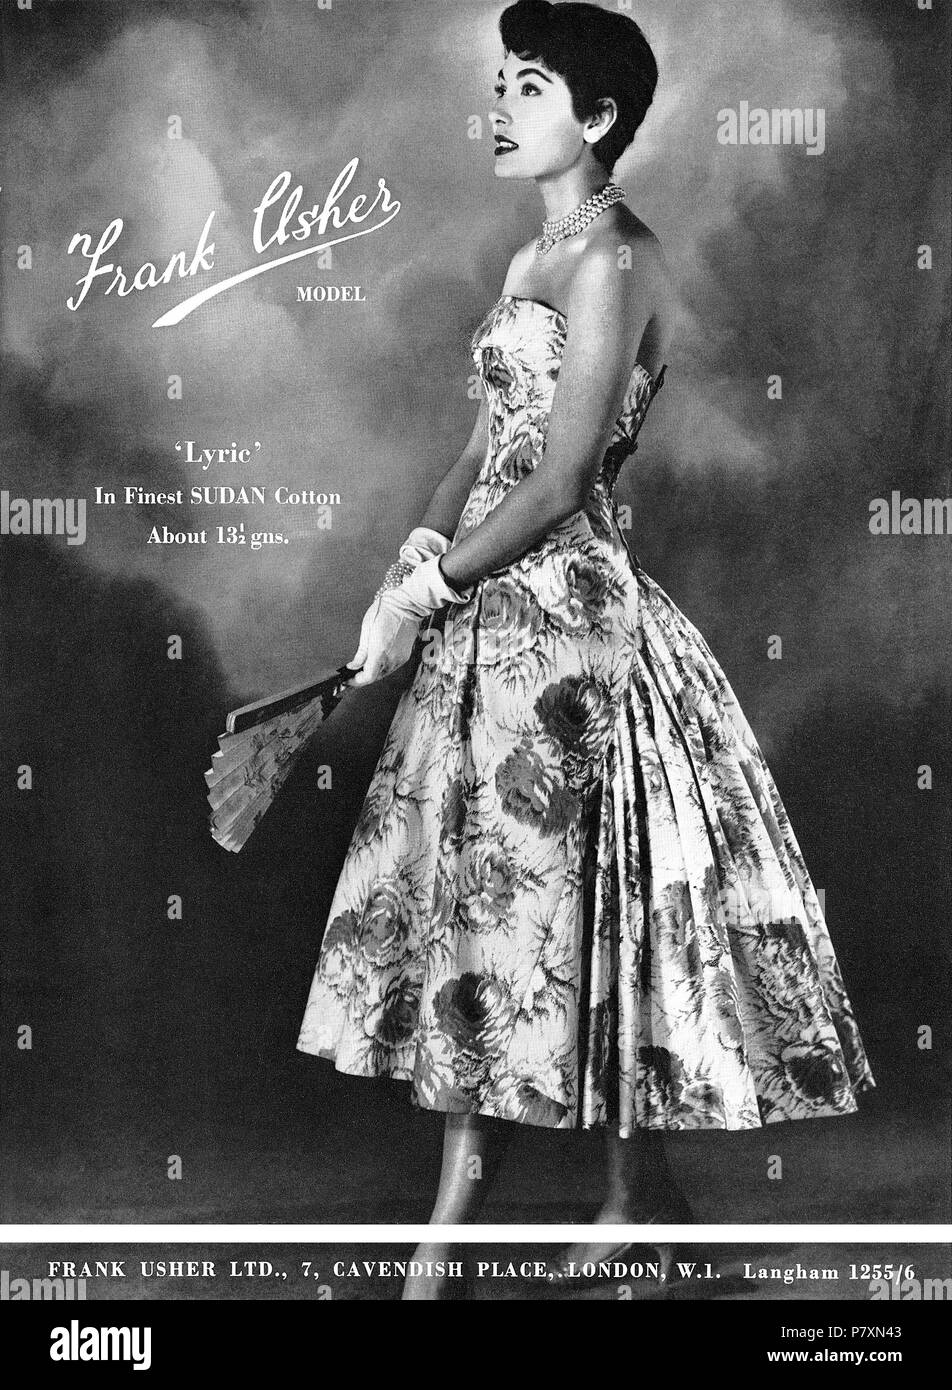 1956 British advertisement for Frank Usher dresses. - Stock Image